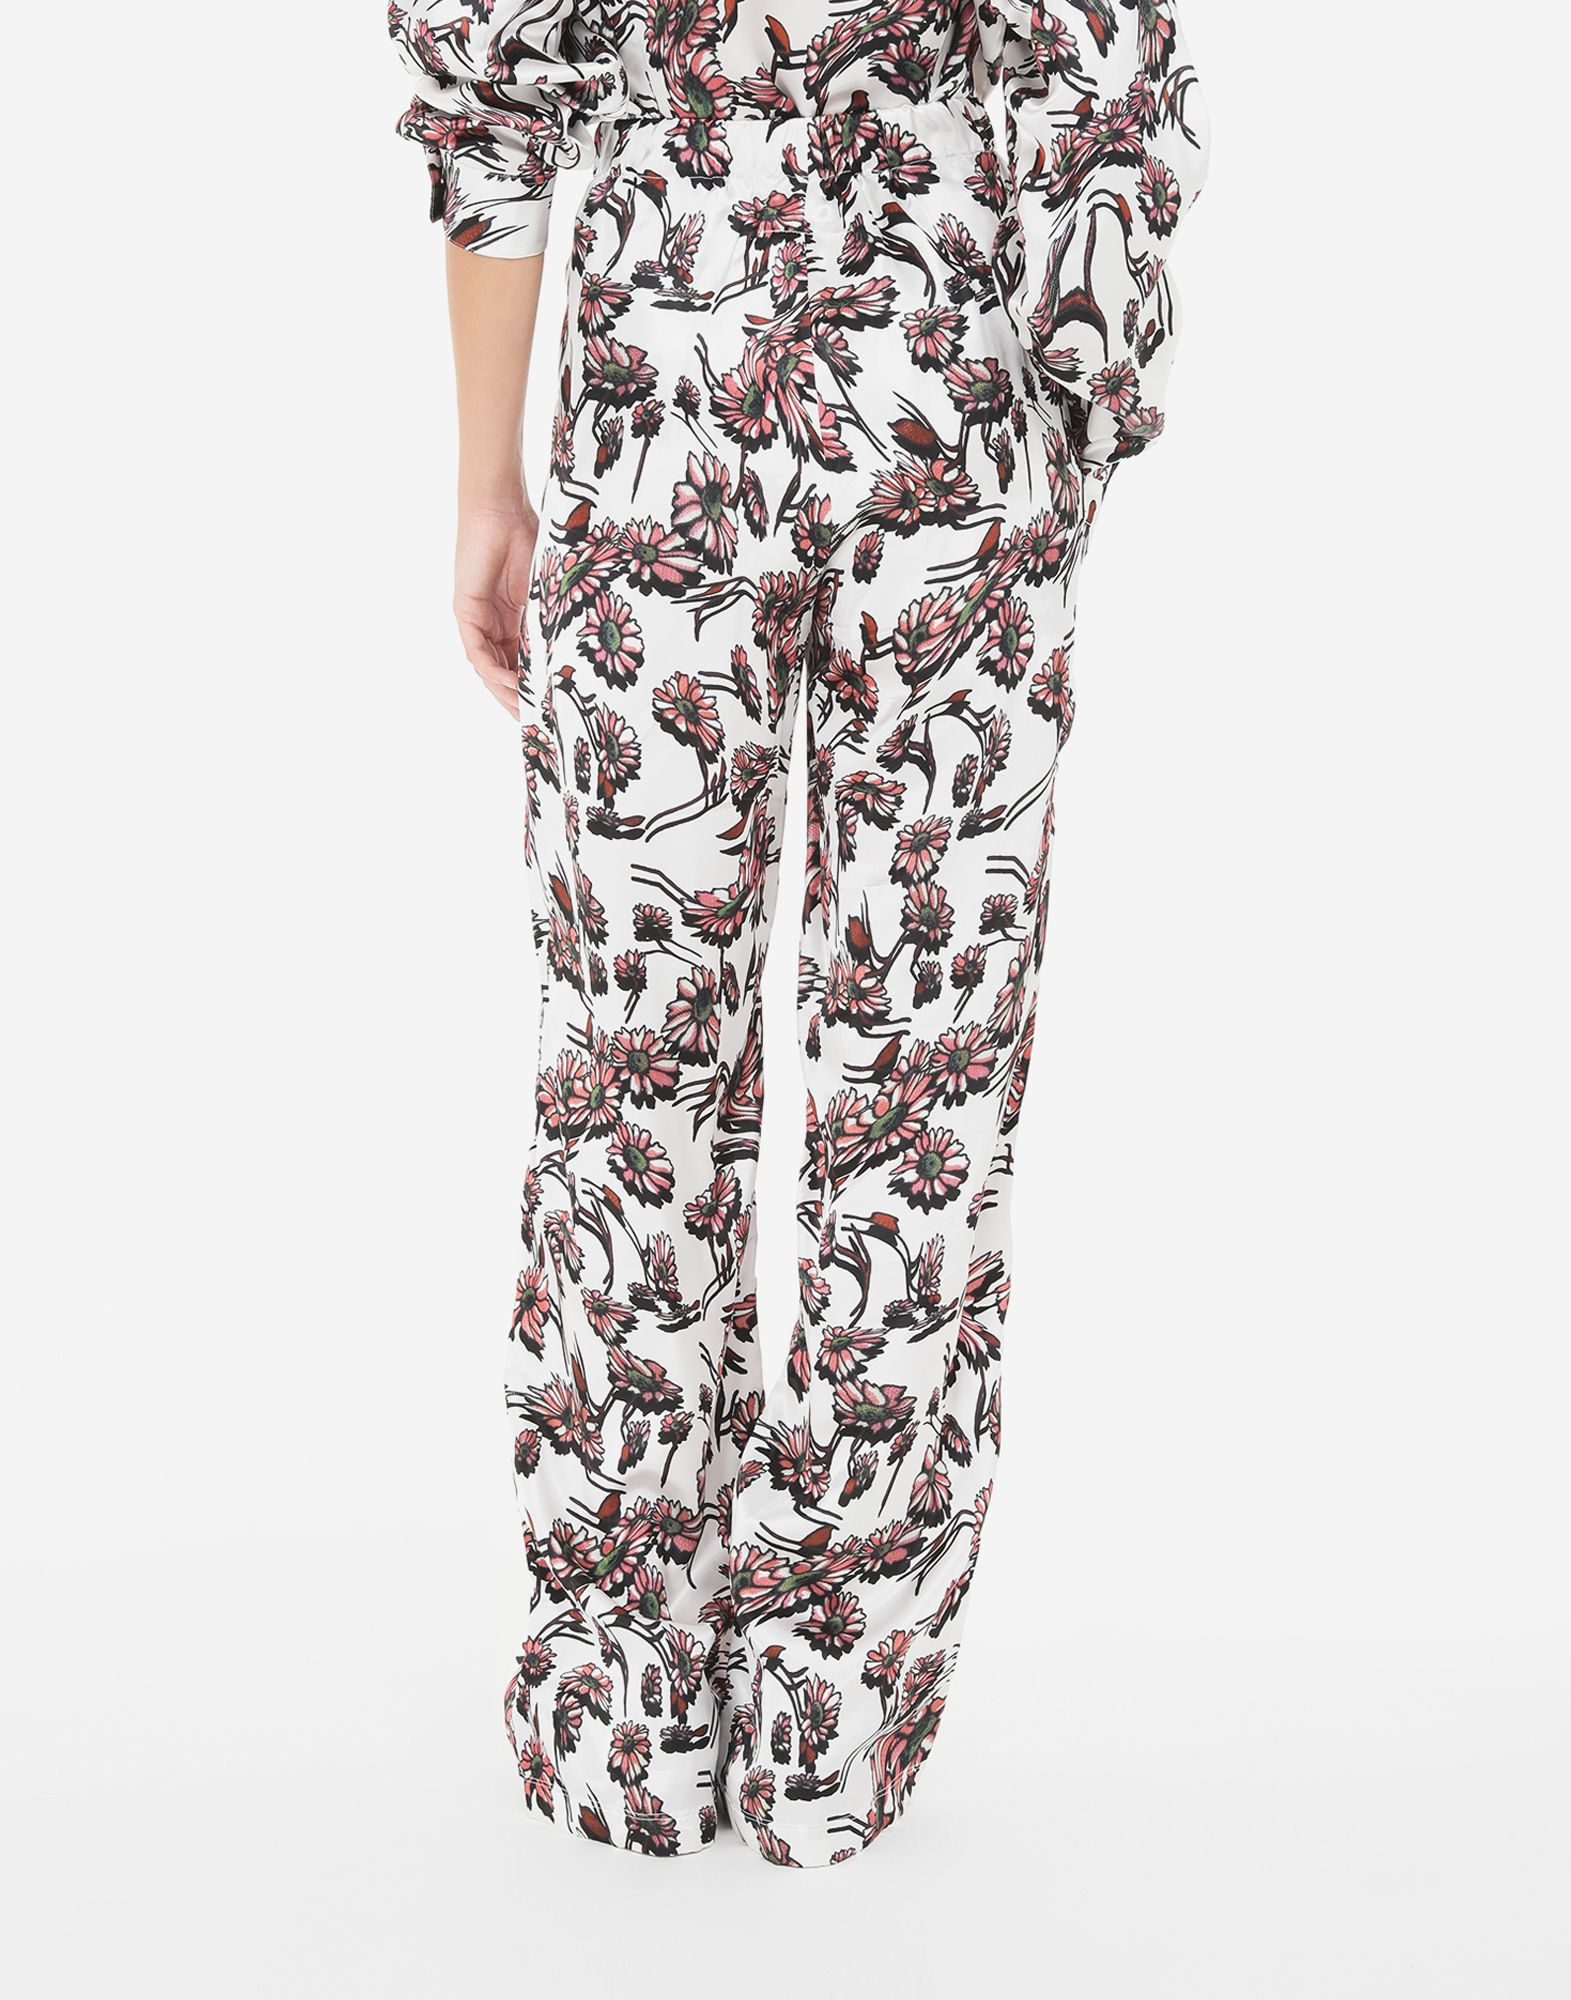 MM6 MAISON MARGIELA Flower trousers Casual pants Woman e